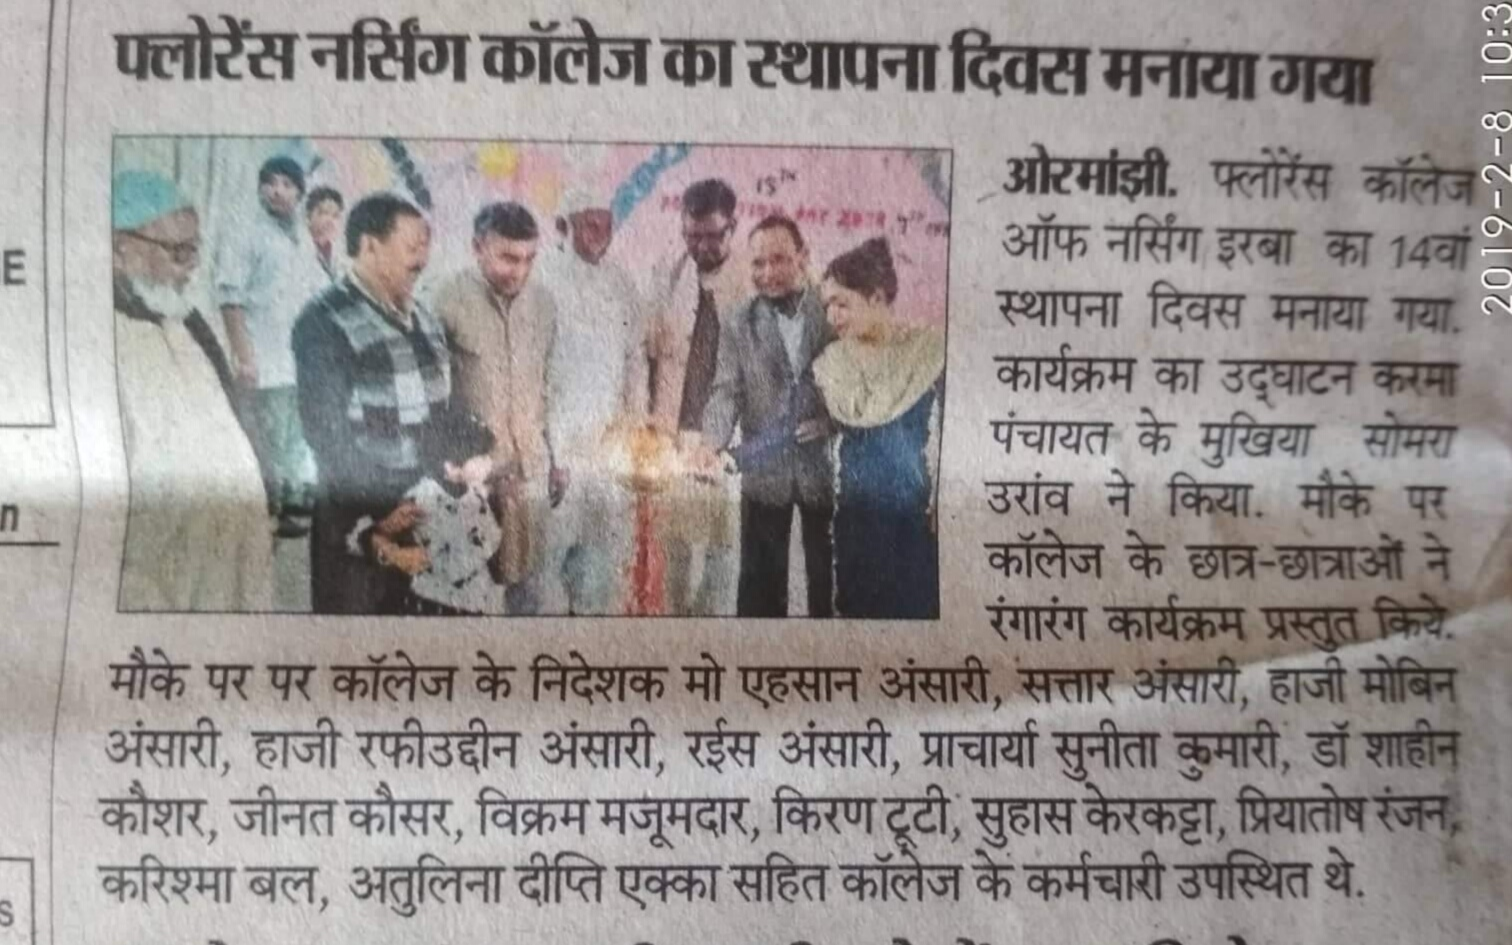 Celebrating 15th Foundation Day of Florence College of Nursing 2019